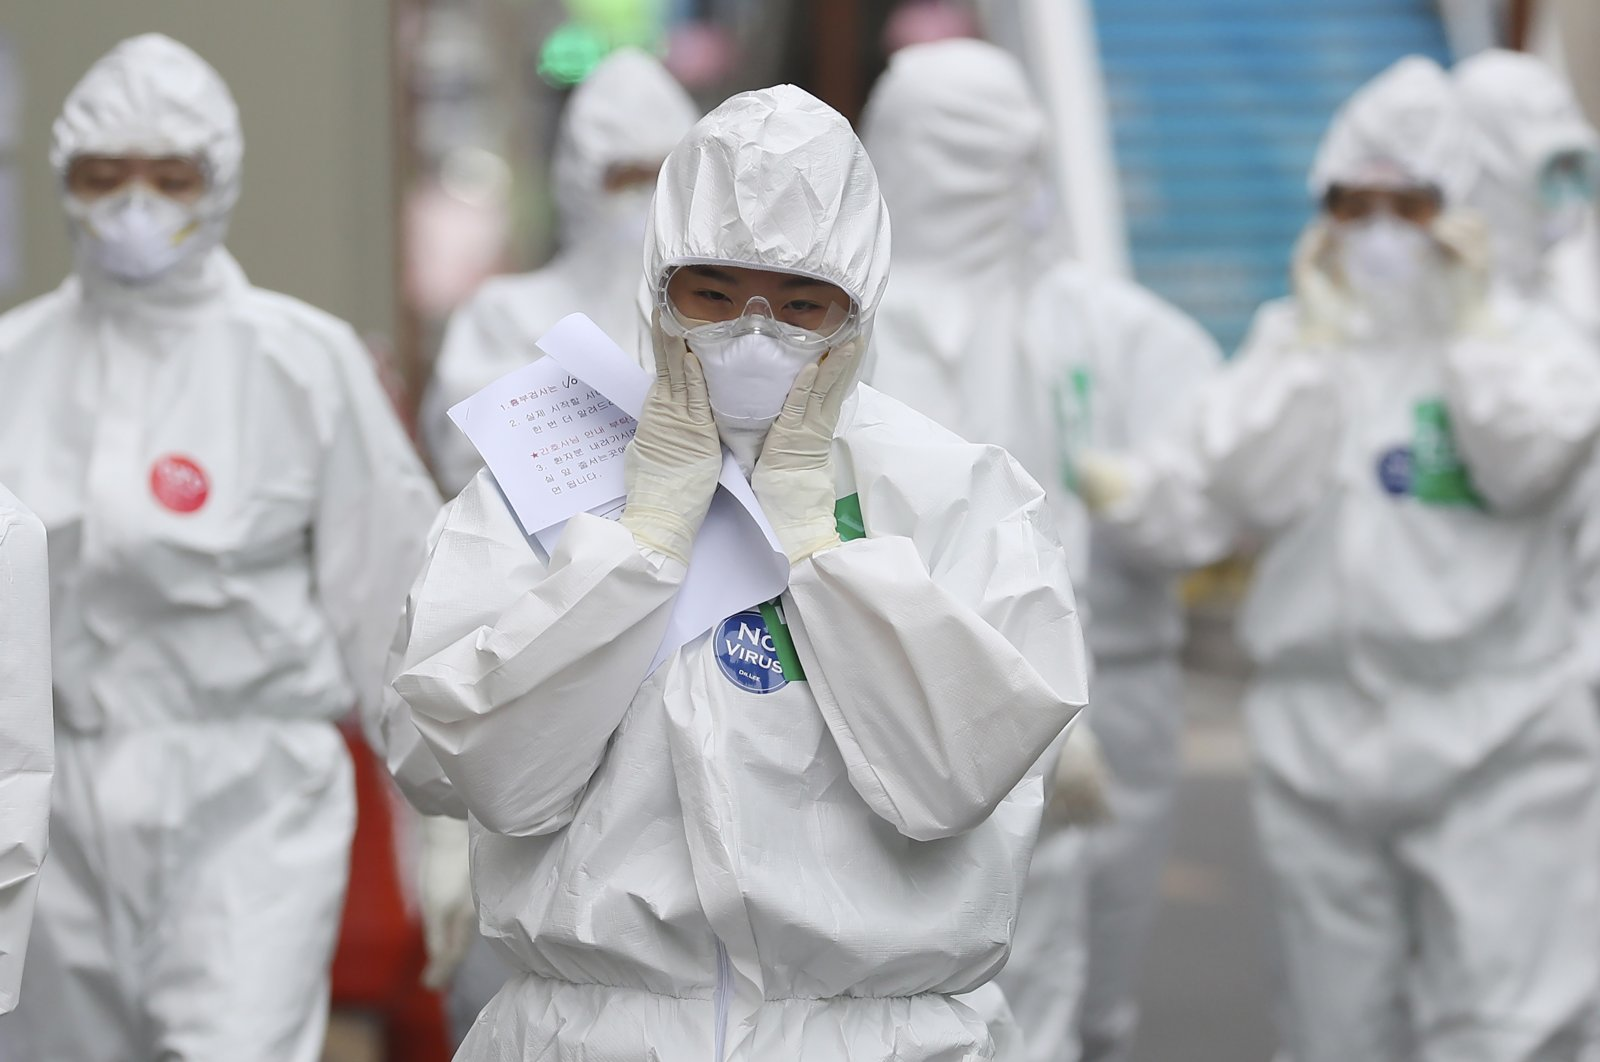 A medical staff member adjusts her face mask as she arrives for a duty shift at Dongsan Medical Center in Daegu, South Korea, Monday, April 13, 2020. (AP Photo)